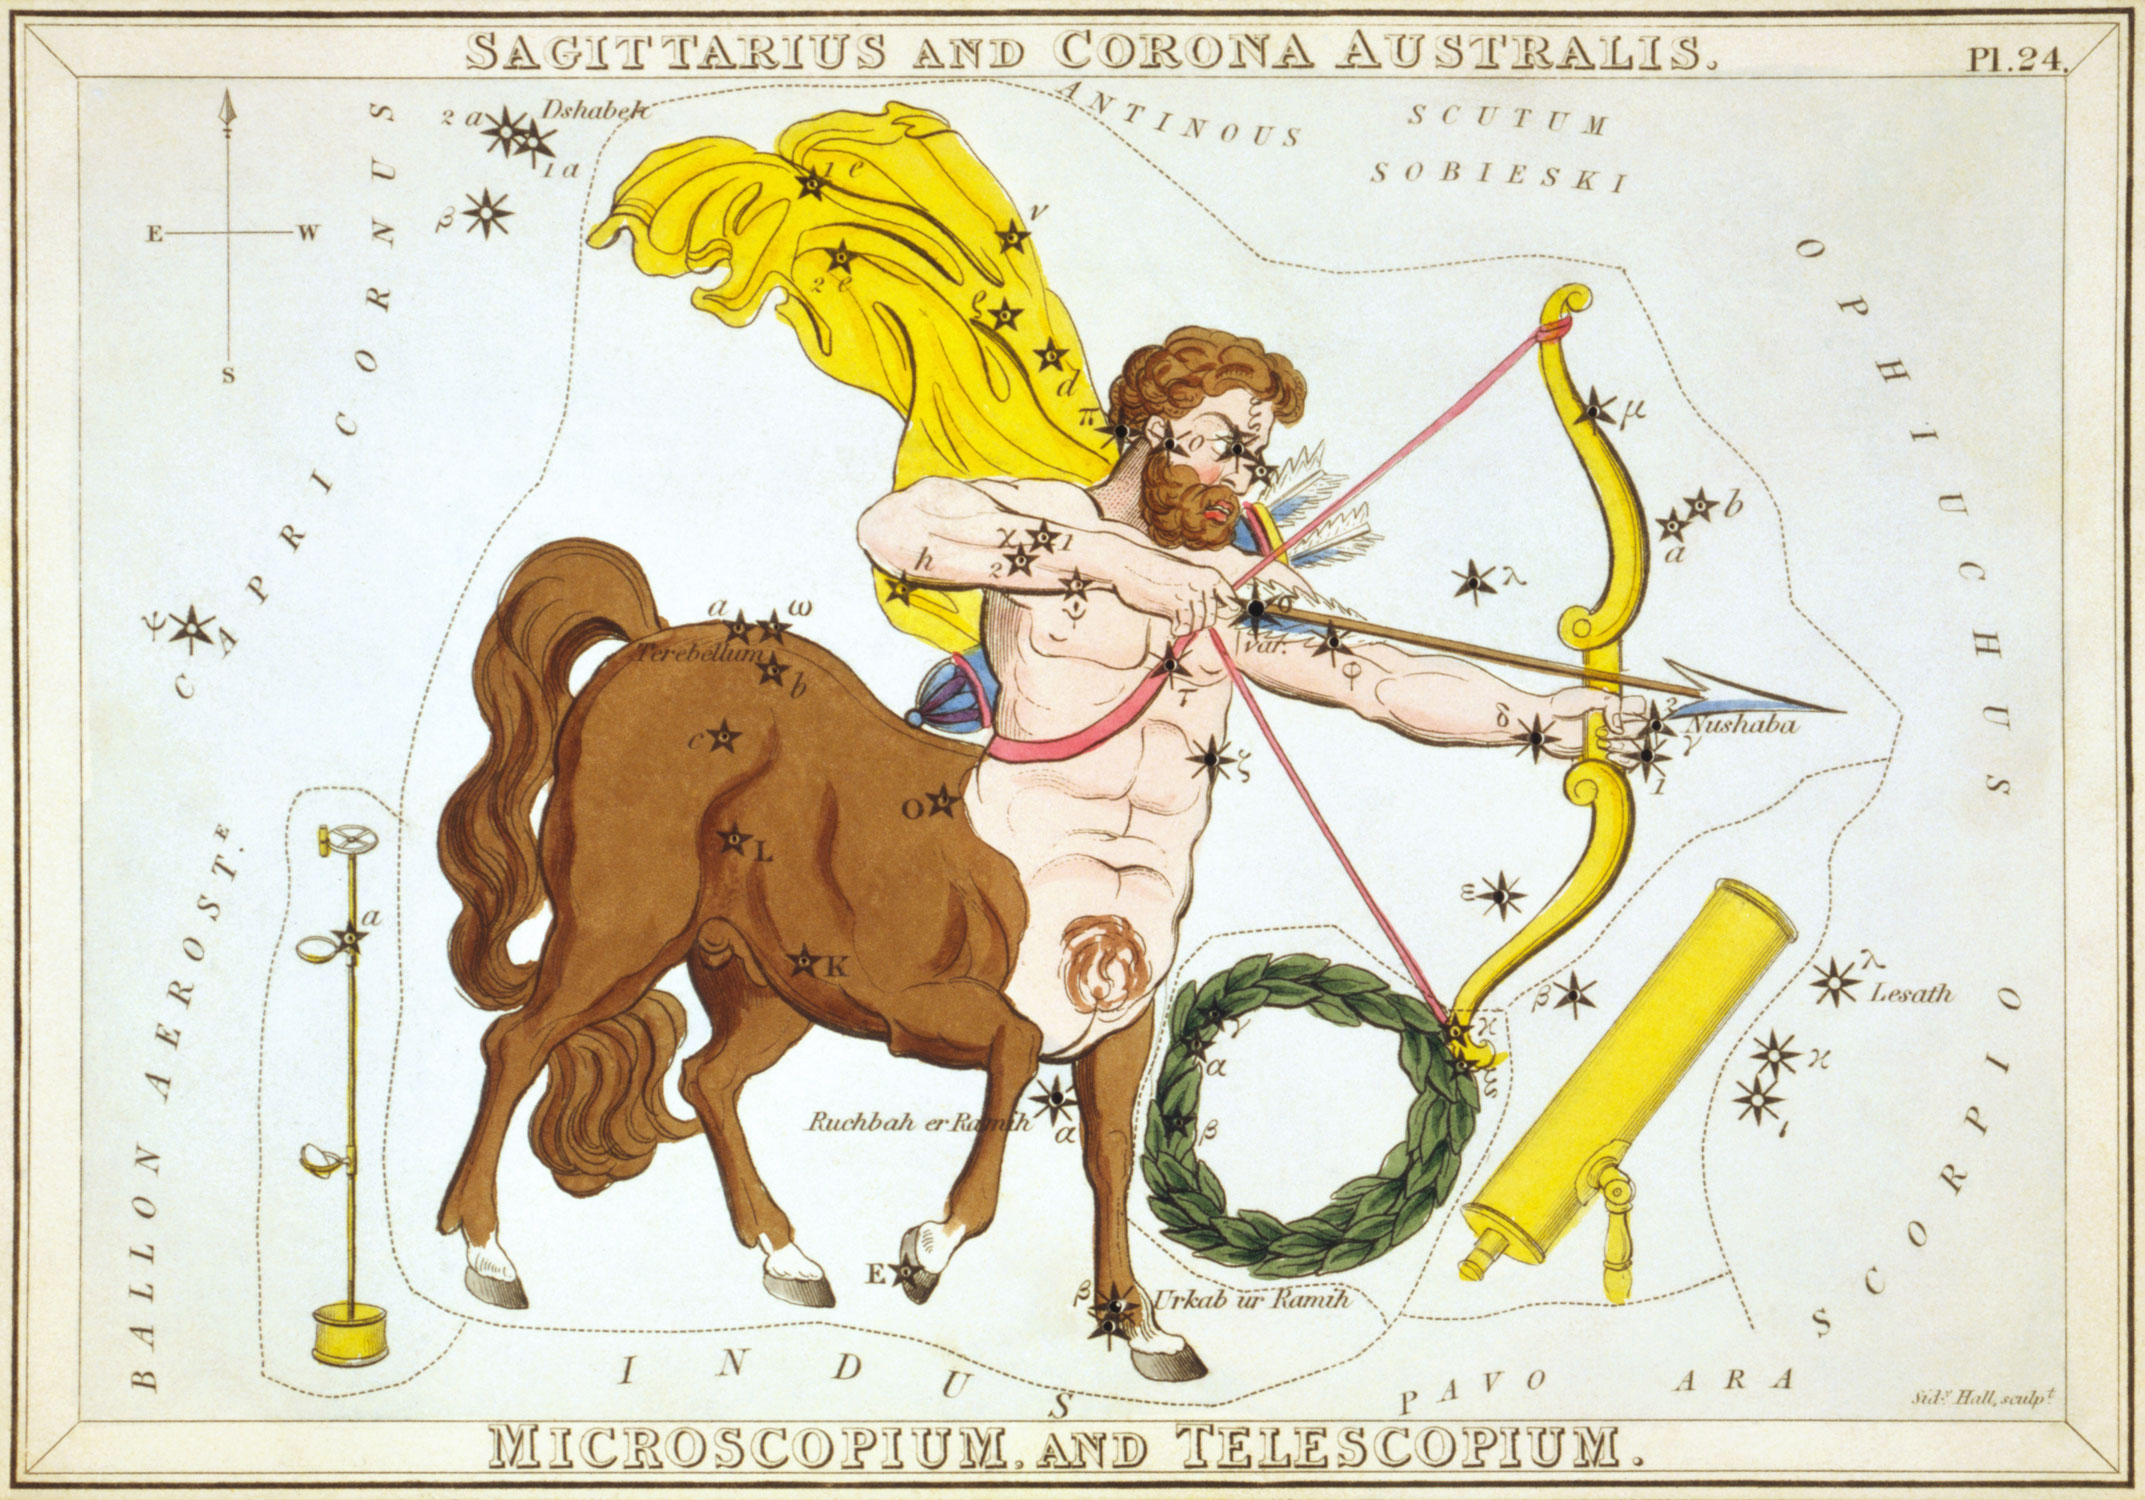 Sagittarius depicted by Jehoshaphat Aspin in a 1824 etching. Courtesy Library of Congress  via Wikimedia Commons .